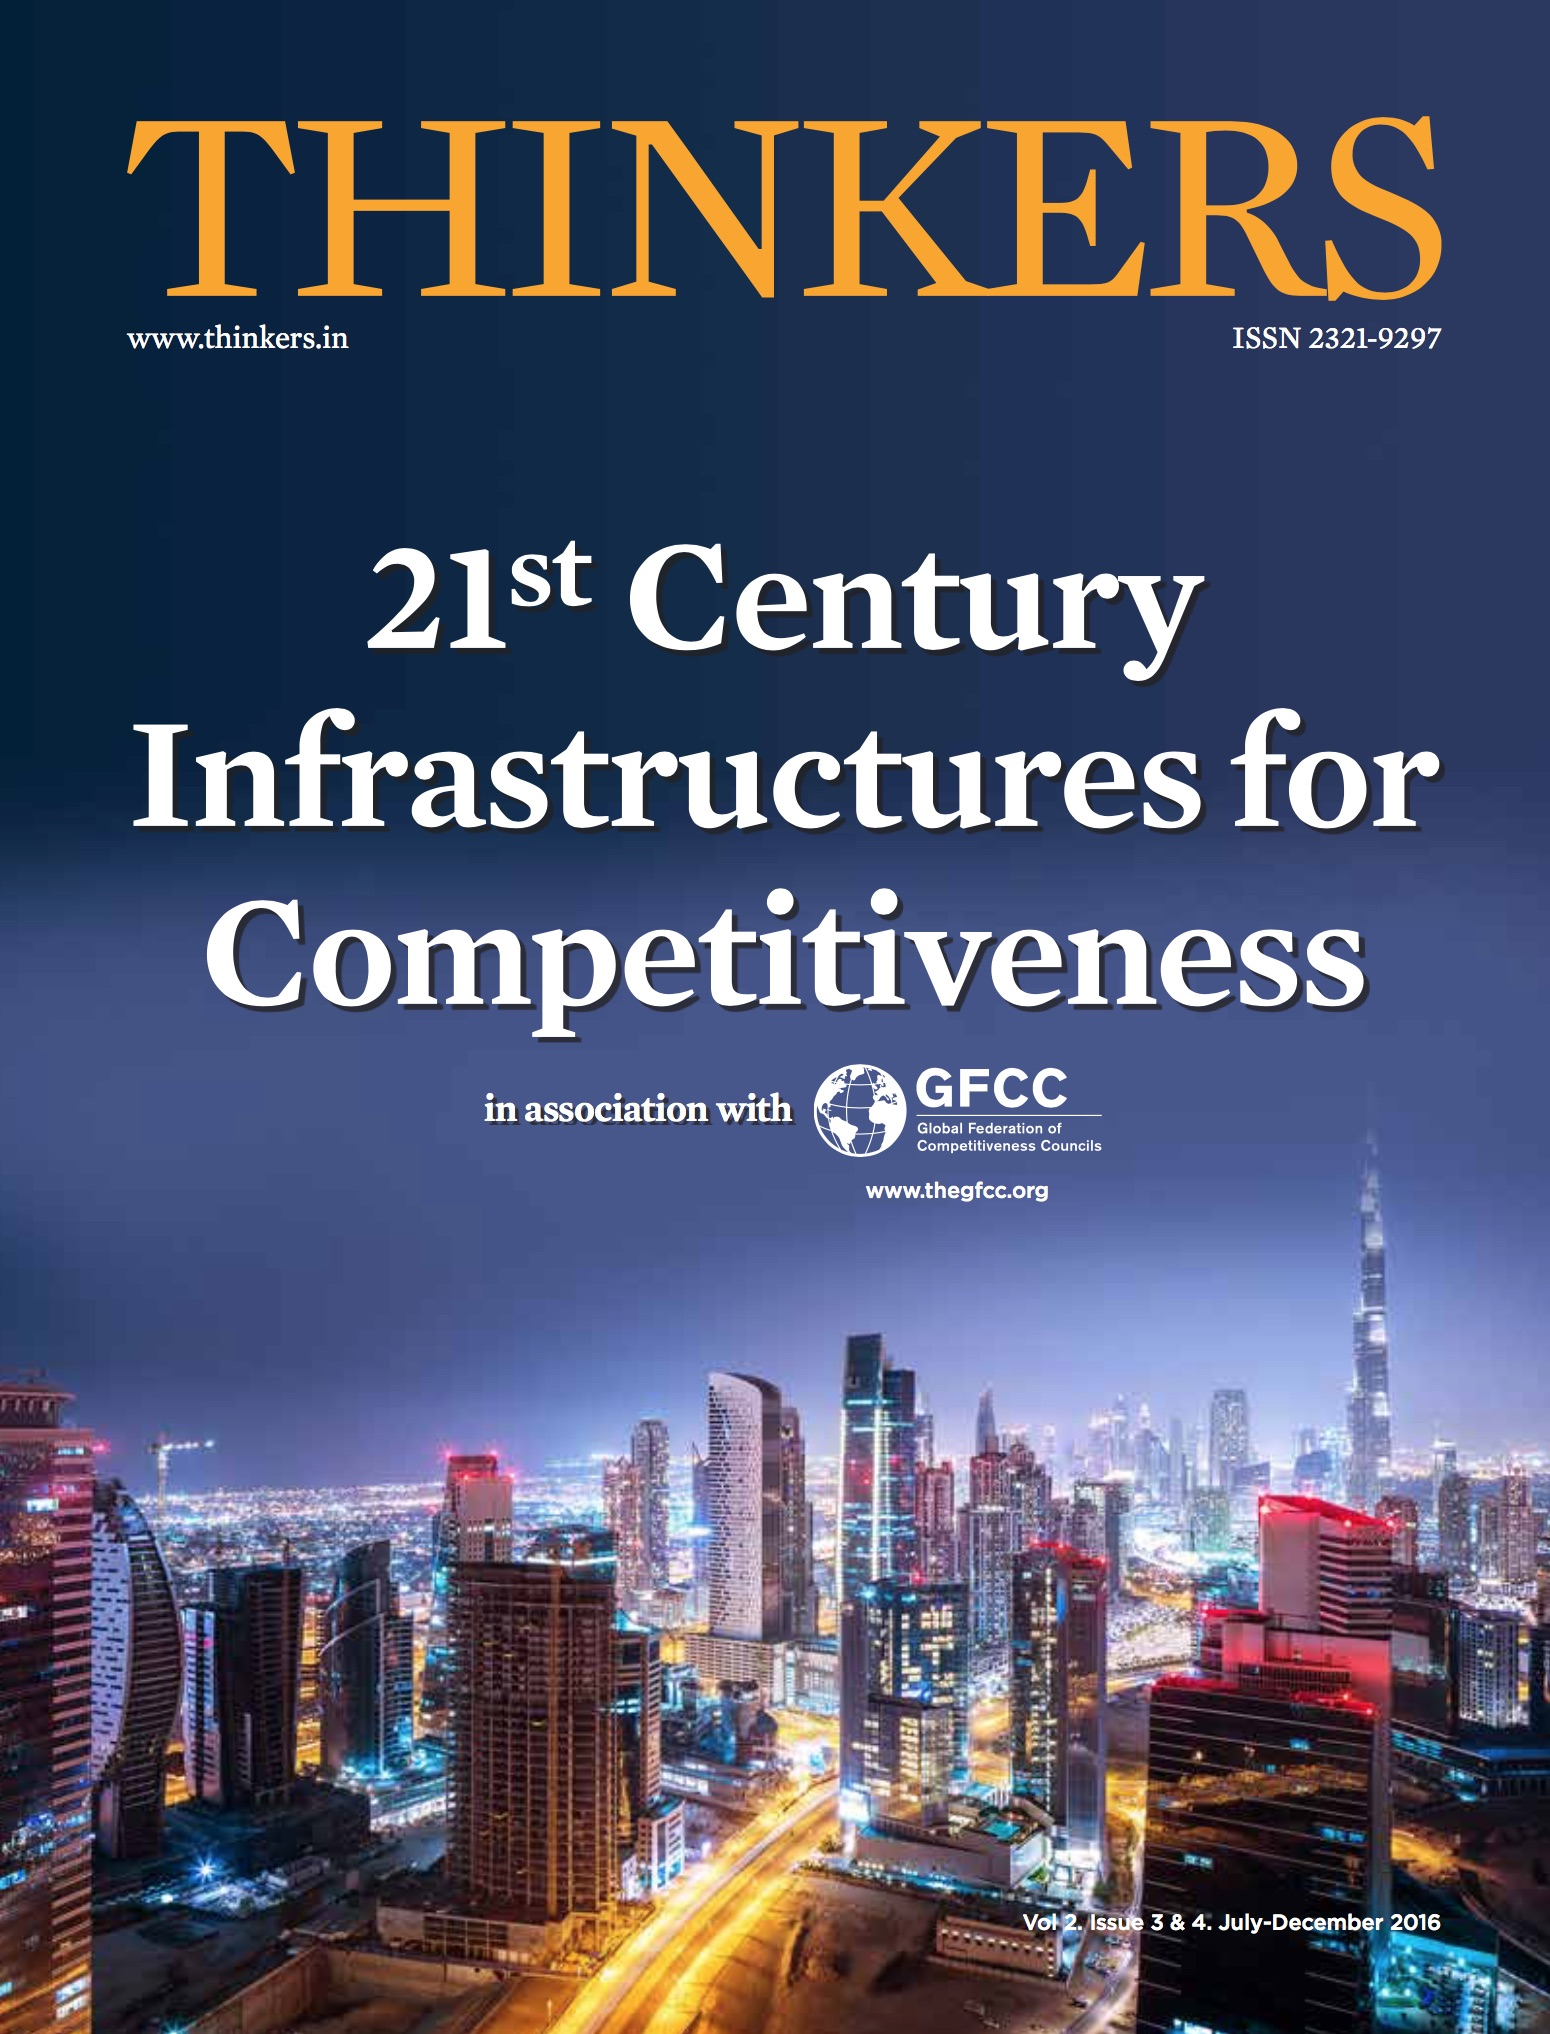 Infrastructure for Competitiveness